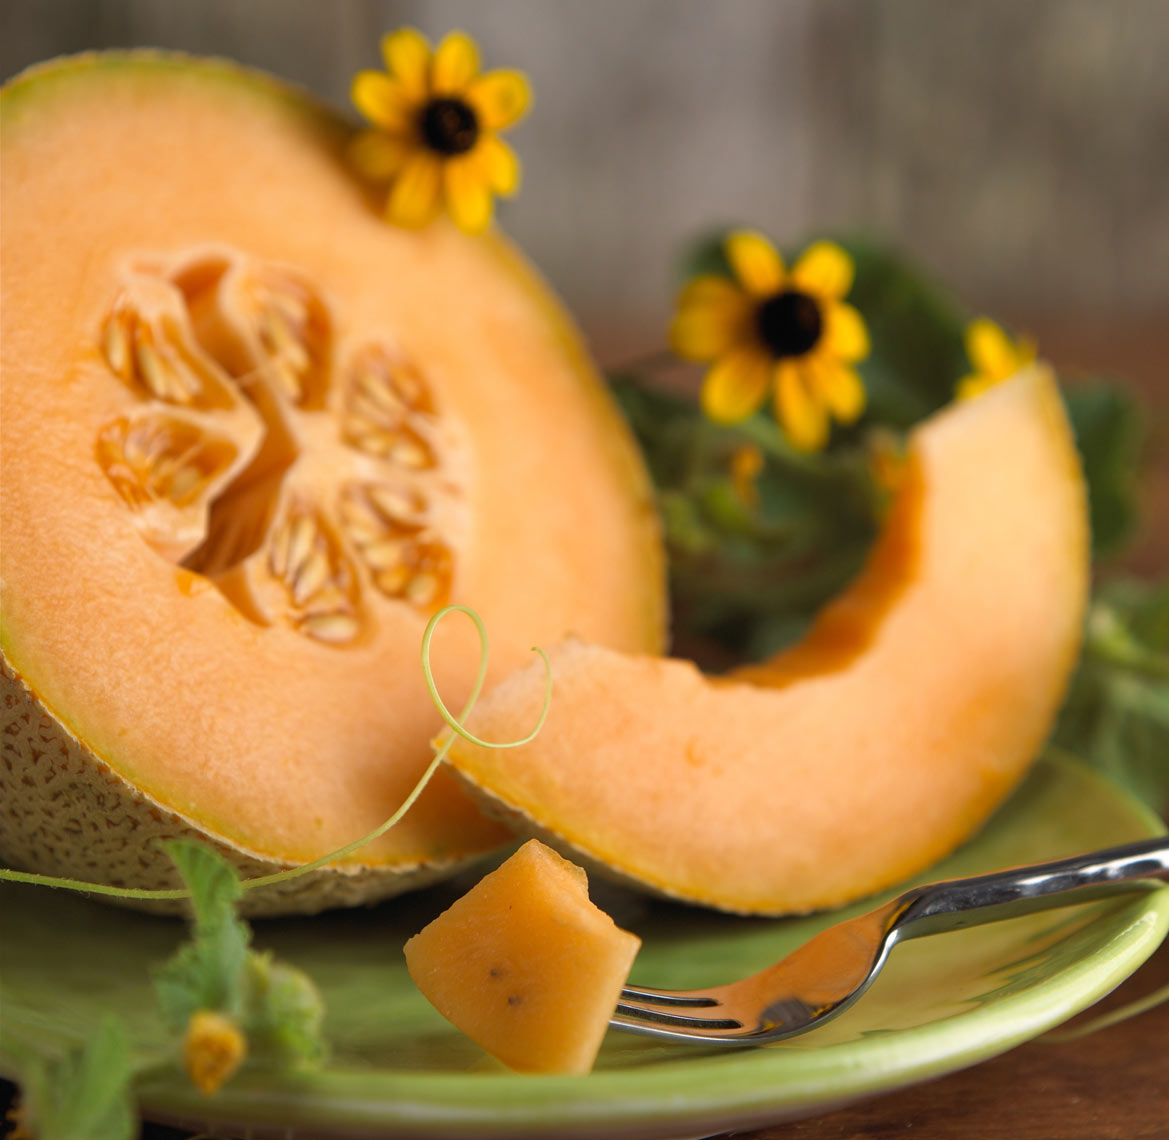 Cantaloupe/green plate/black eyed Susan's/food photography/InsideOut Studios